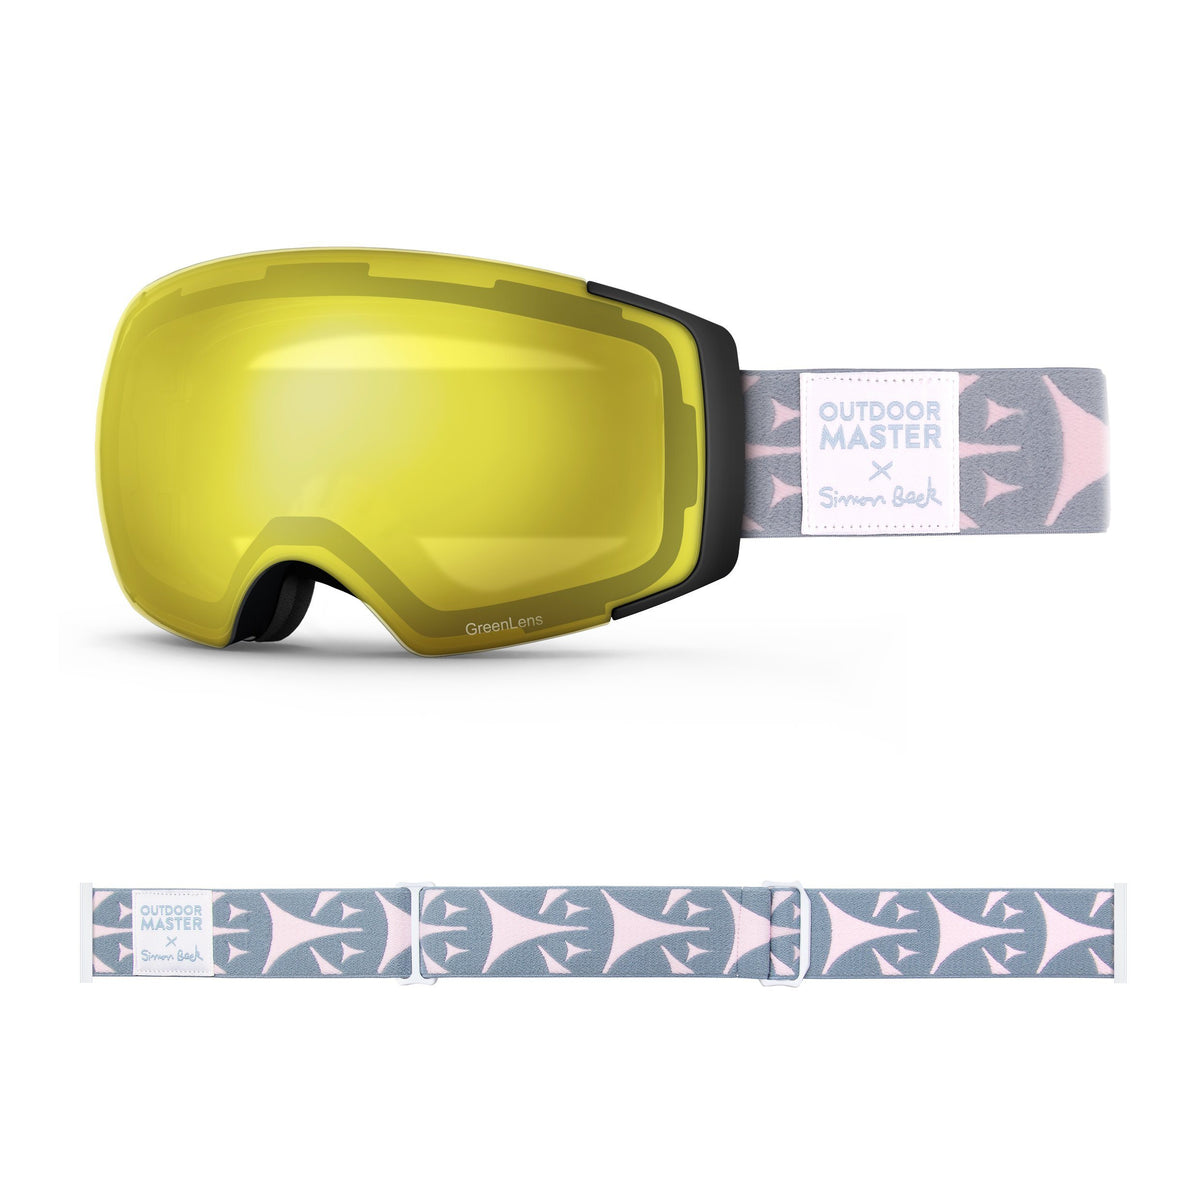 OutdoorMaster x Simon Beck Ski Goggles Pro Series - Snowshoeing Art Limited Edition OutdoorMaster GreenLens VLT 75% TAC Yellow Lens Polarized Bouncy Triangles